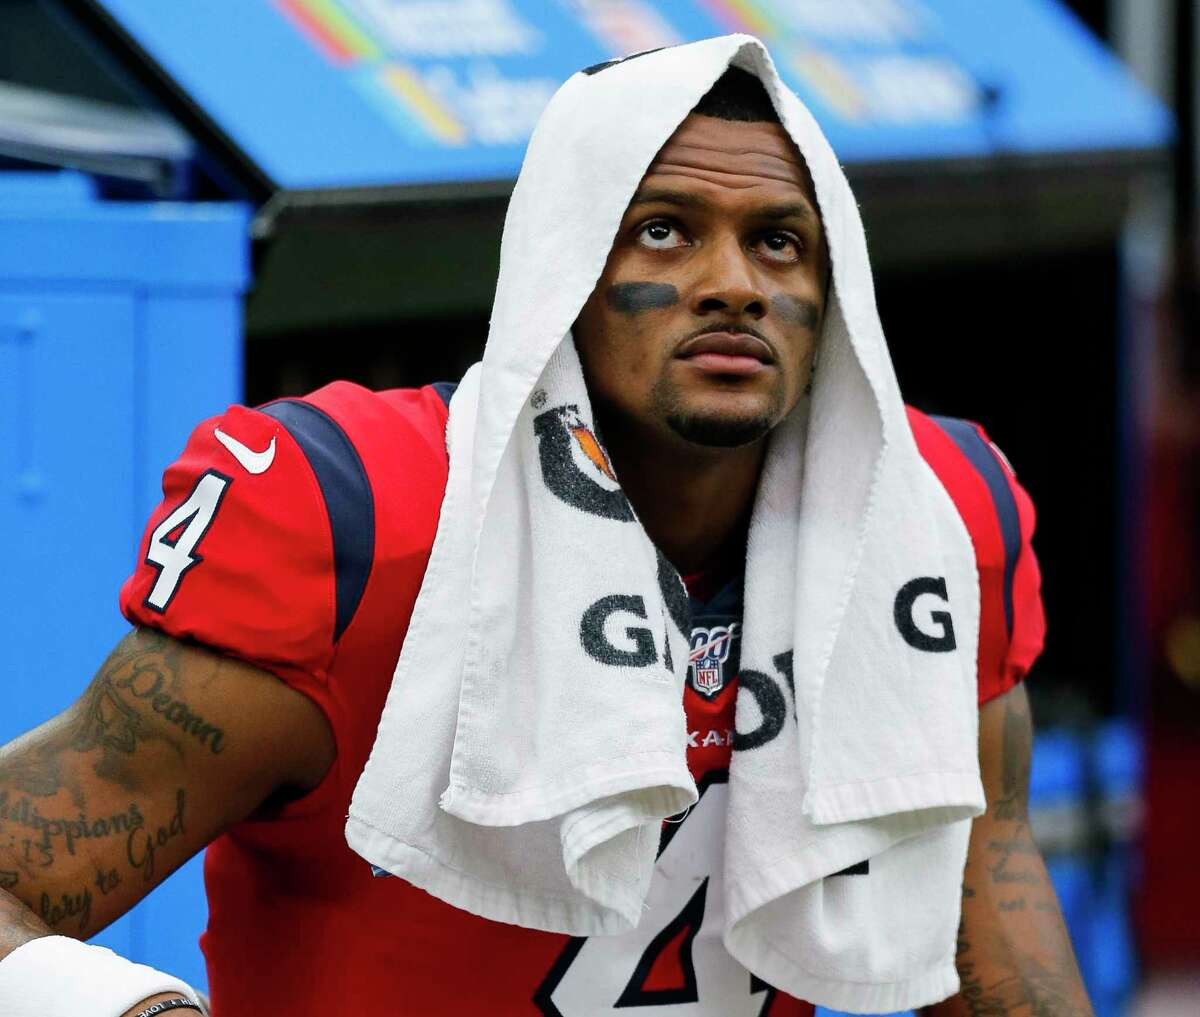 Texans quarterback Deshaun Watson faces a future without wide receiver DeAndre Hopkins, who was a first-team All-Pro in each of Watson's three NFL seasons.